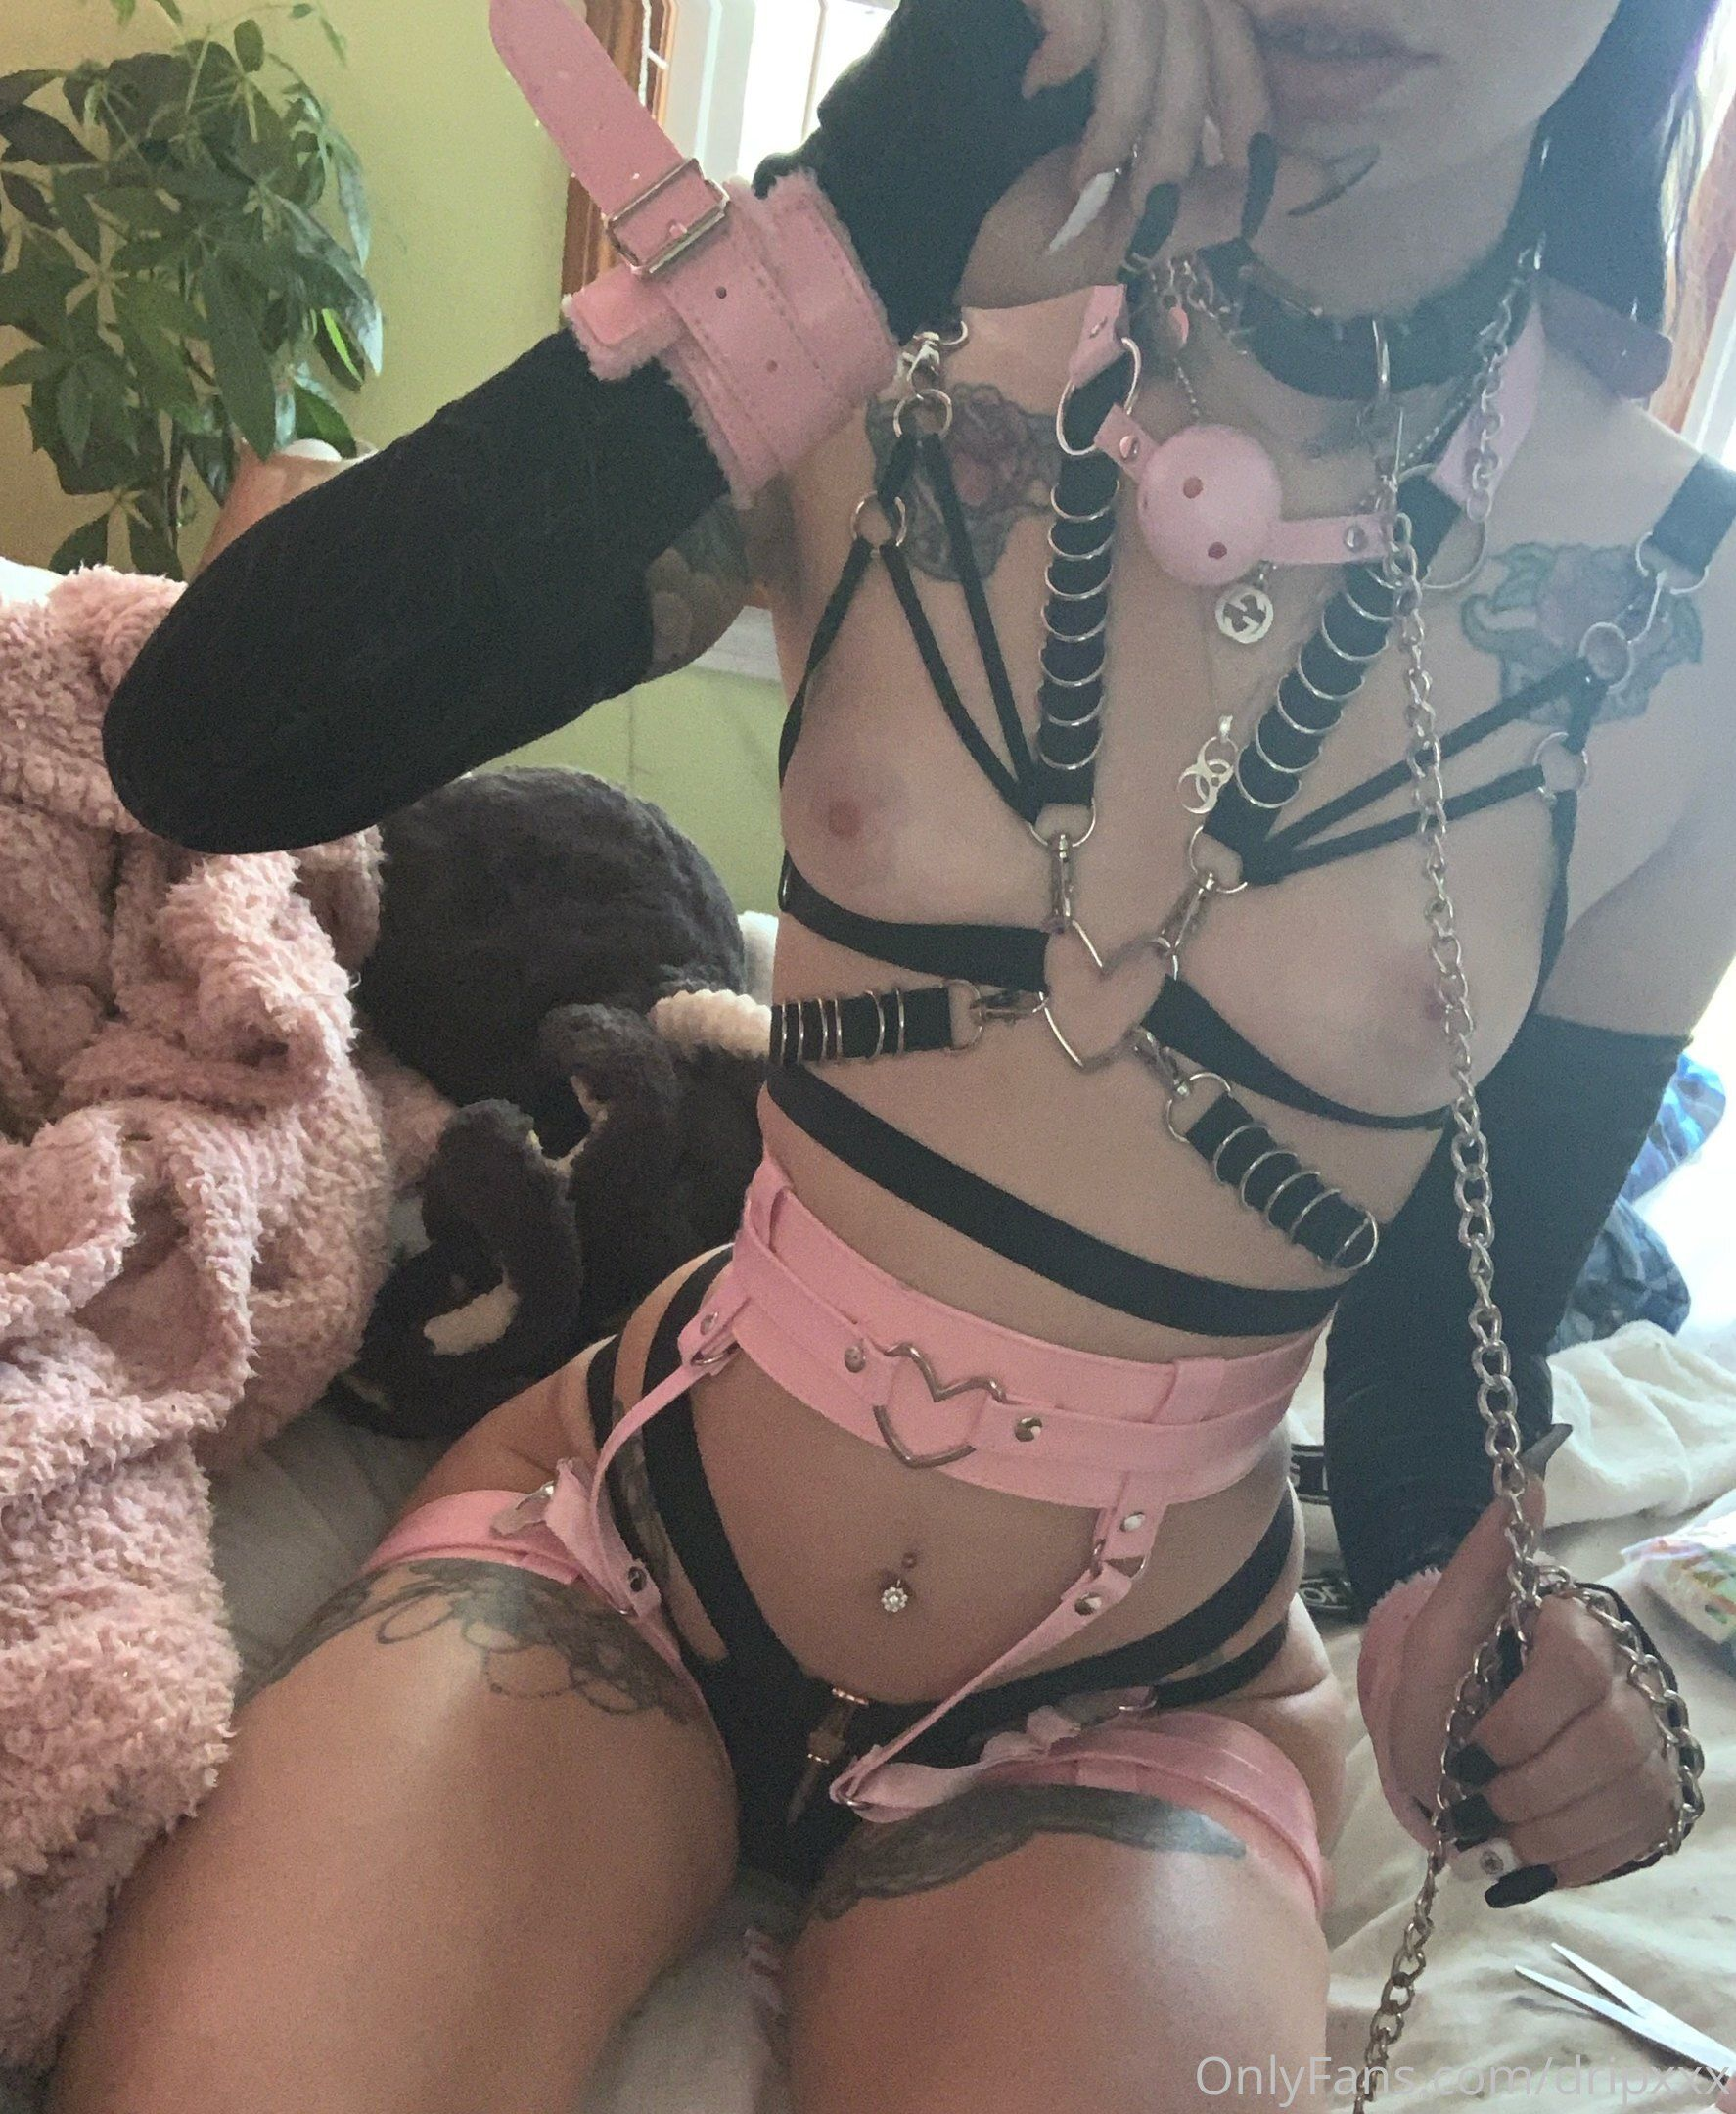 Dripxxx Nude Onlyfans Photos 0034